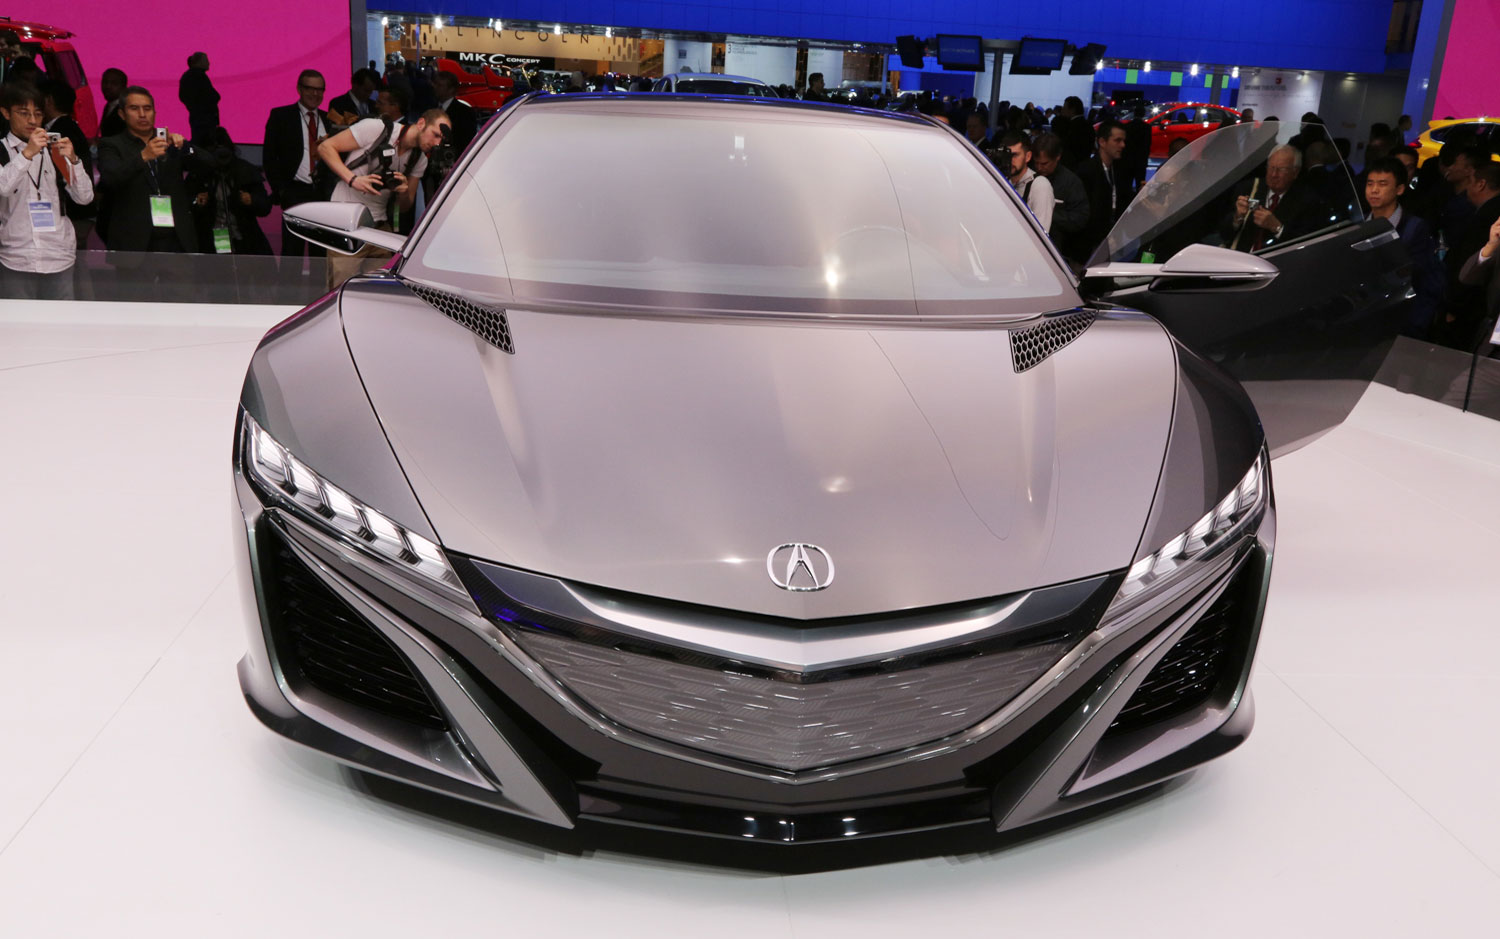 Cars Model 2013 2014: Updated Acura NSX Concept Shows ...